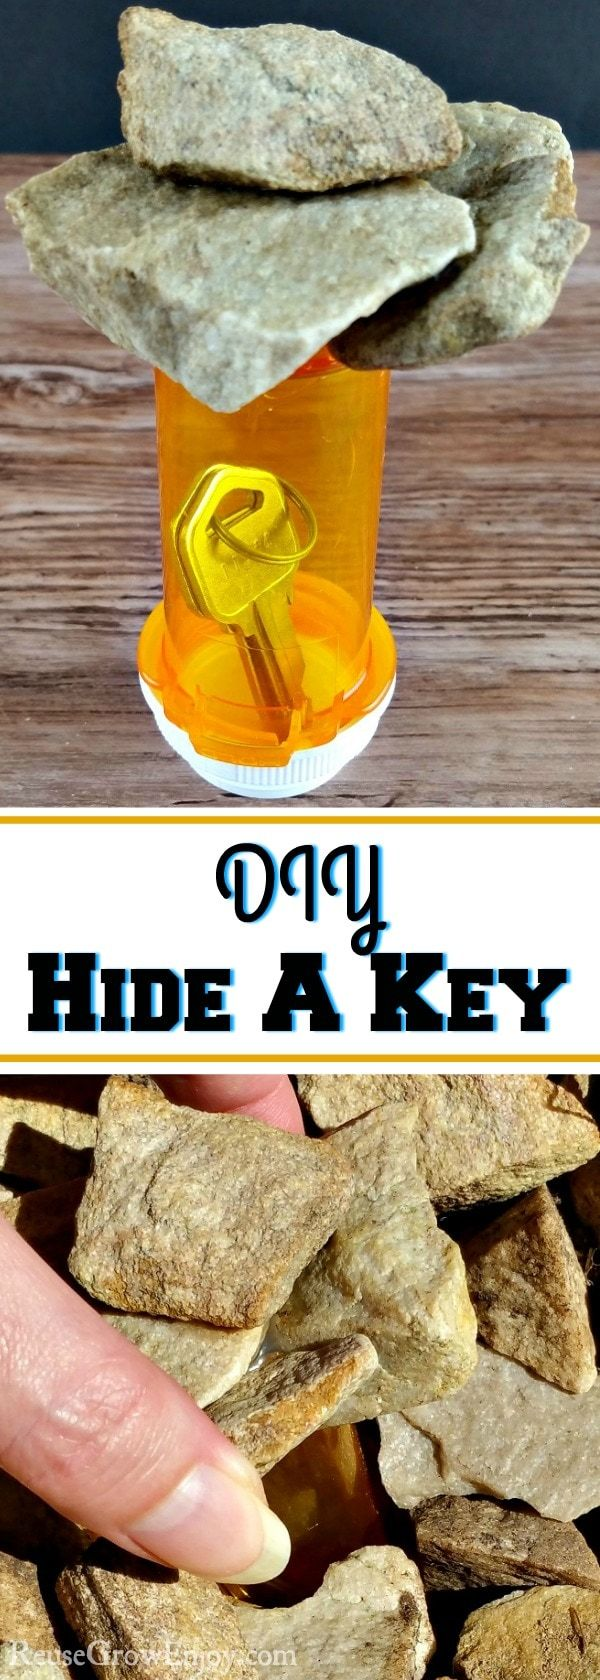 Everyone needs a safe place to stash a key for those times you lock or forgot yours. Check out this DIY Hide A Key - Made From RX Bottle!